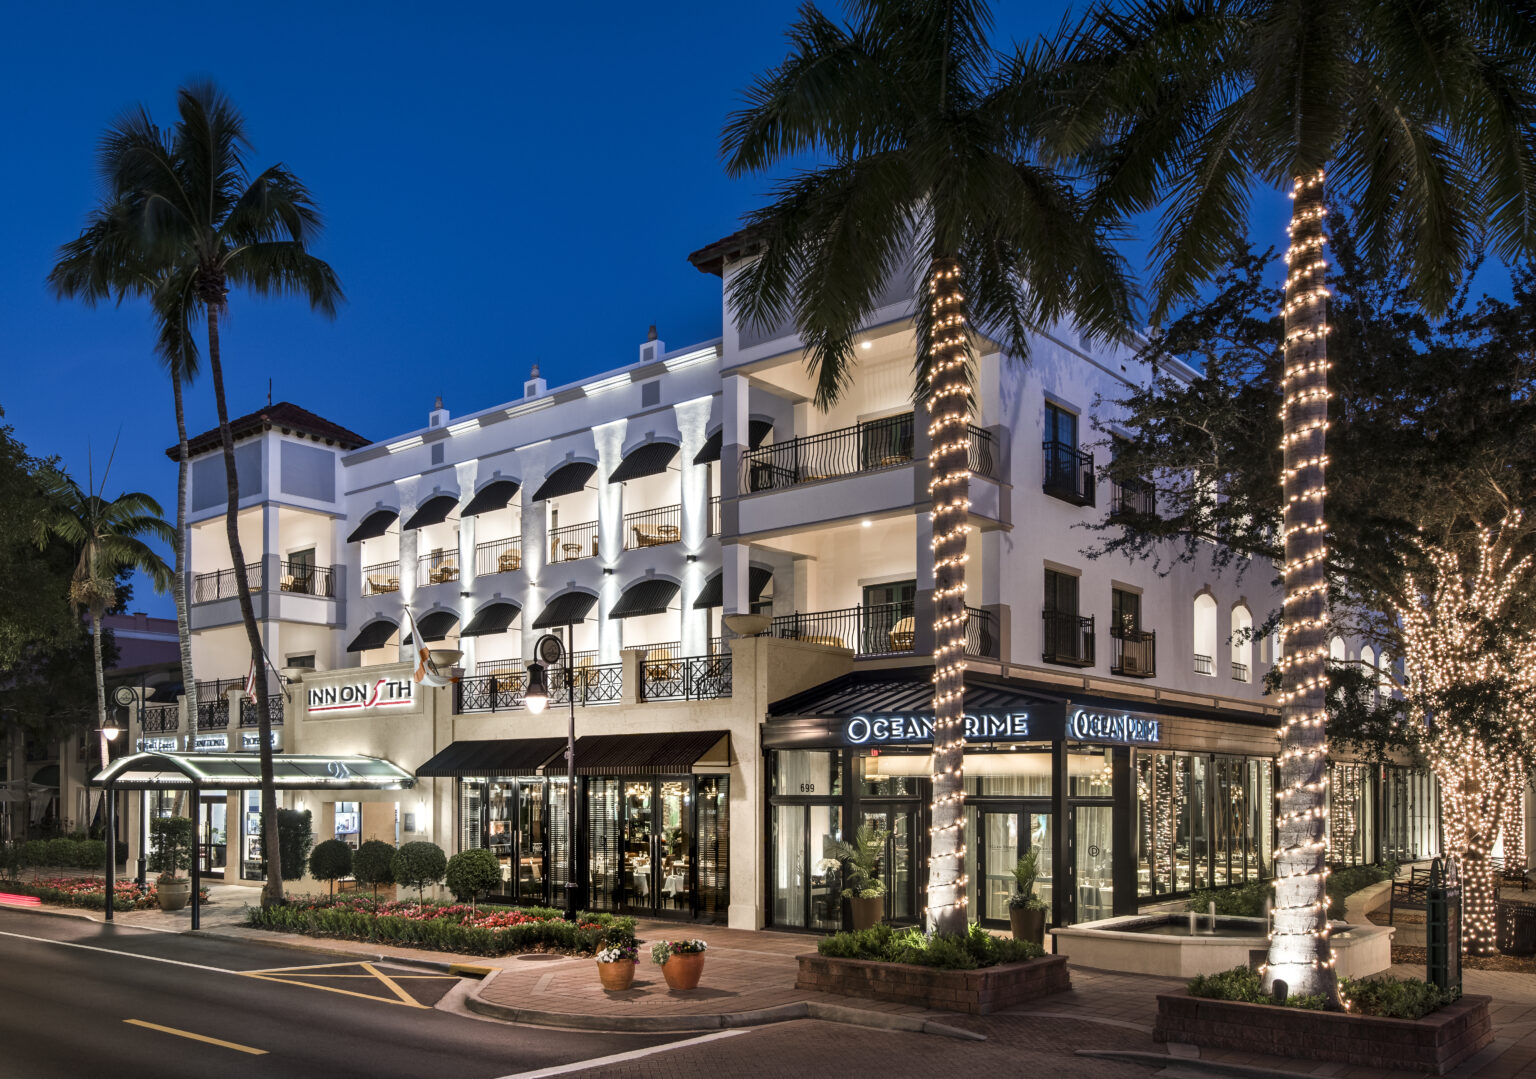 The Inn on 5th is in the center of it all in downtown Naples.